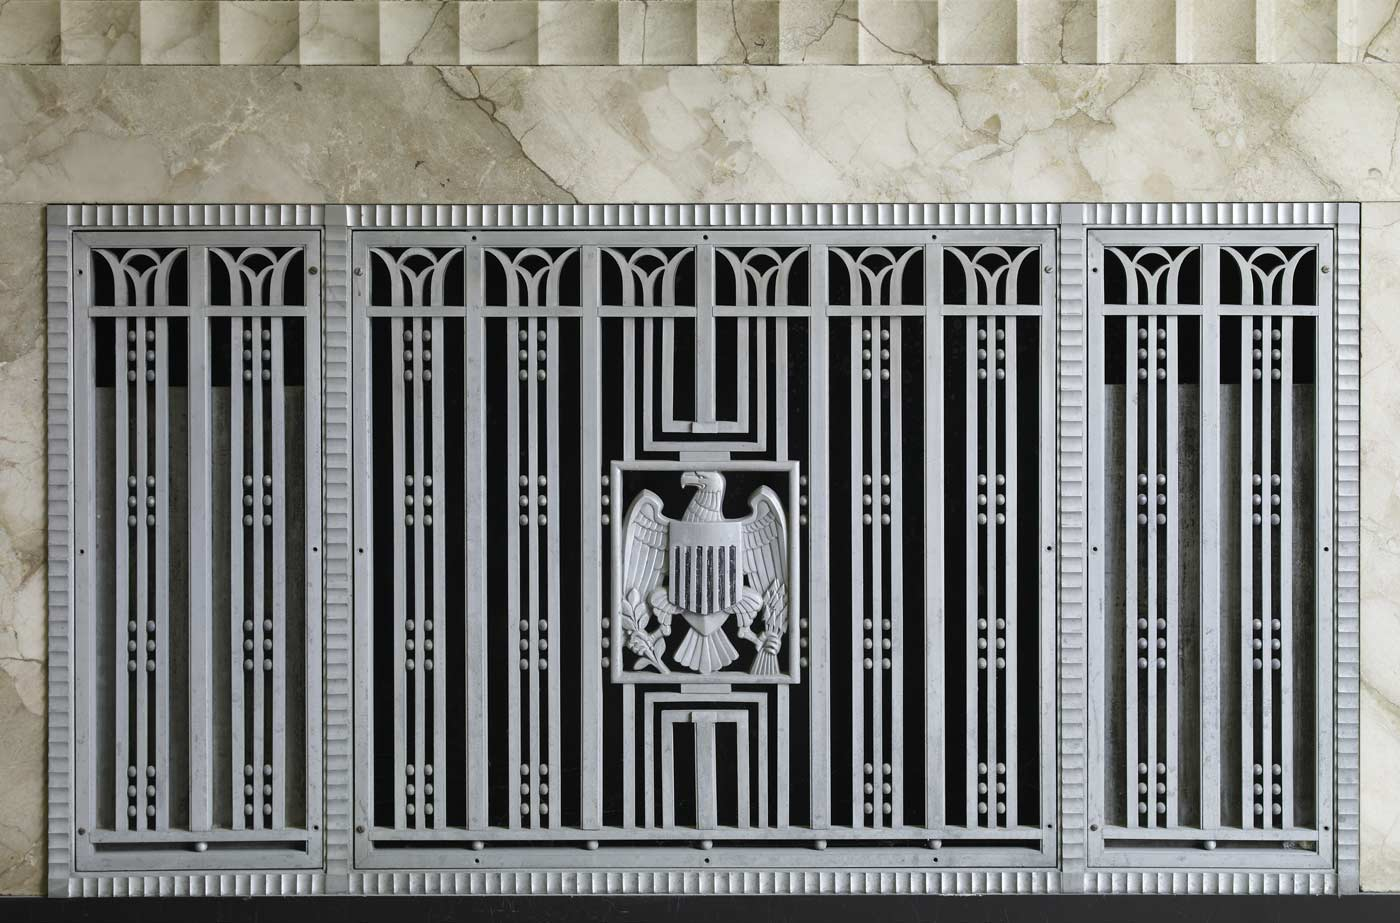 Interior grill detail, James T. Foley U.S. Post Office and Court